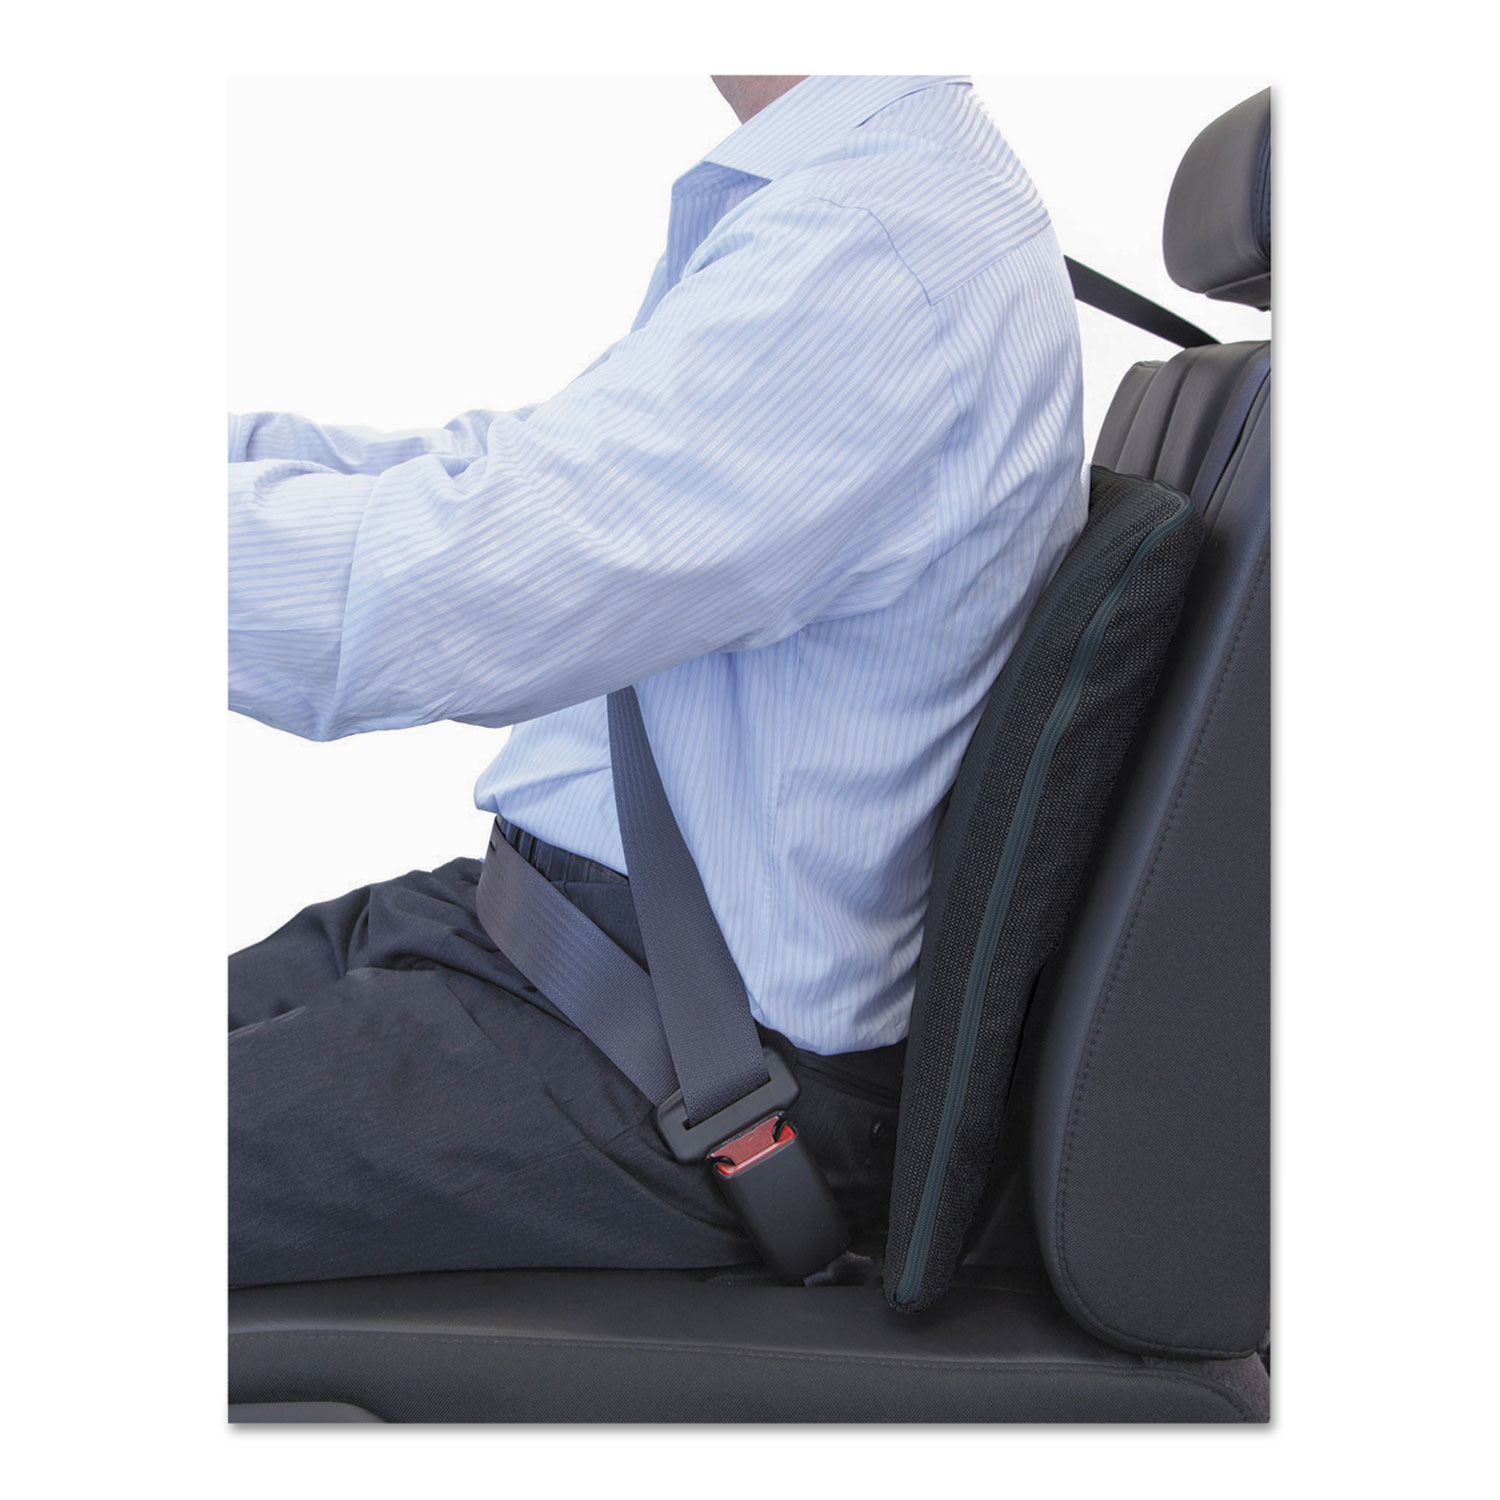 Mas91061 Master Caster 174 Deluxe Seat Back Cushion W Memory